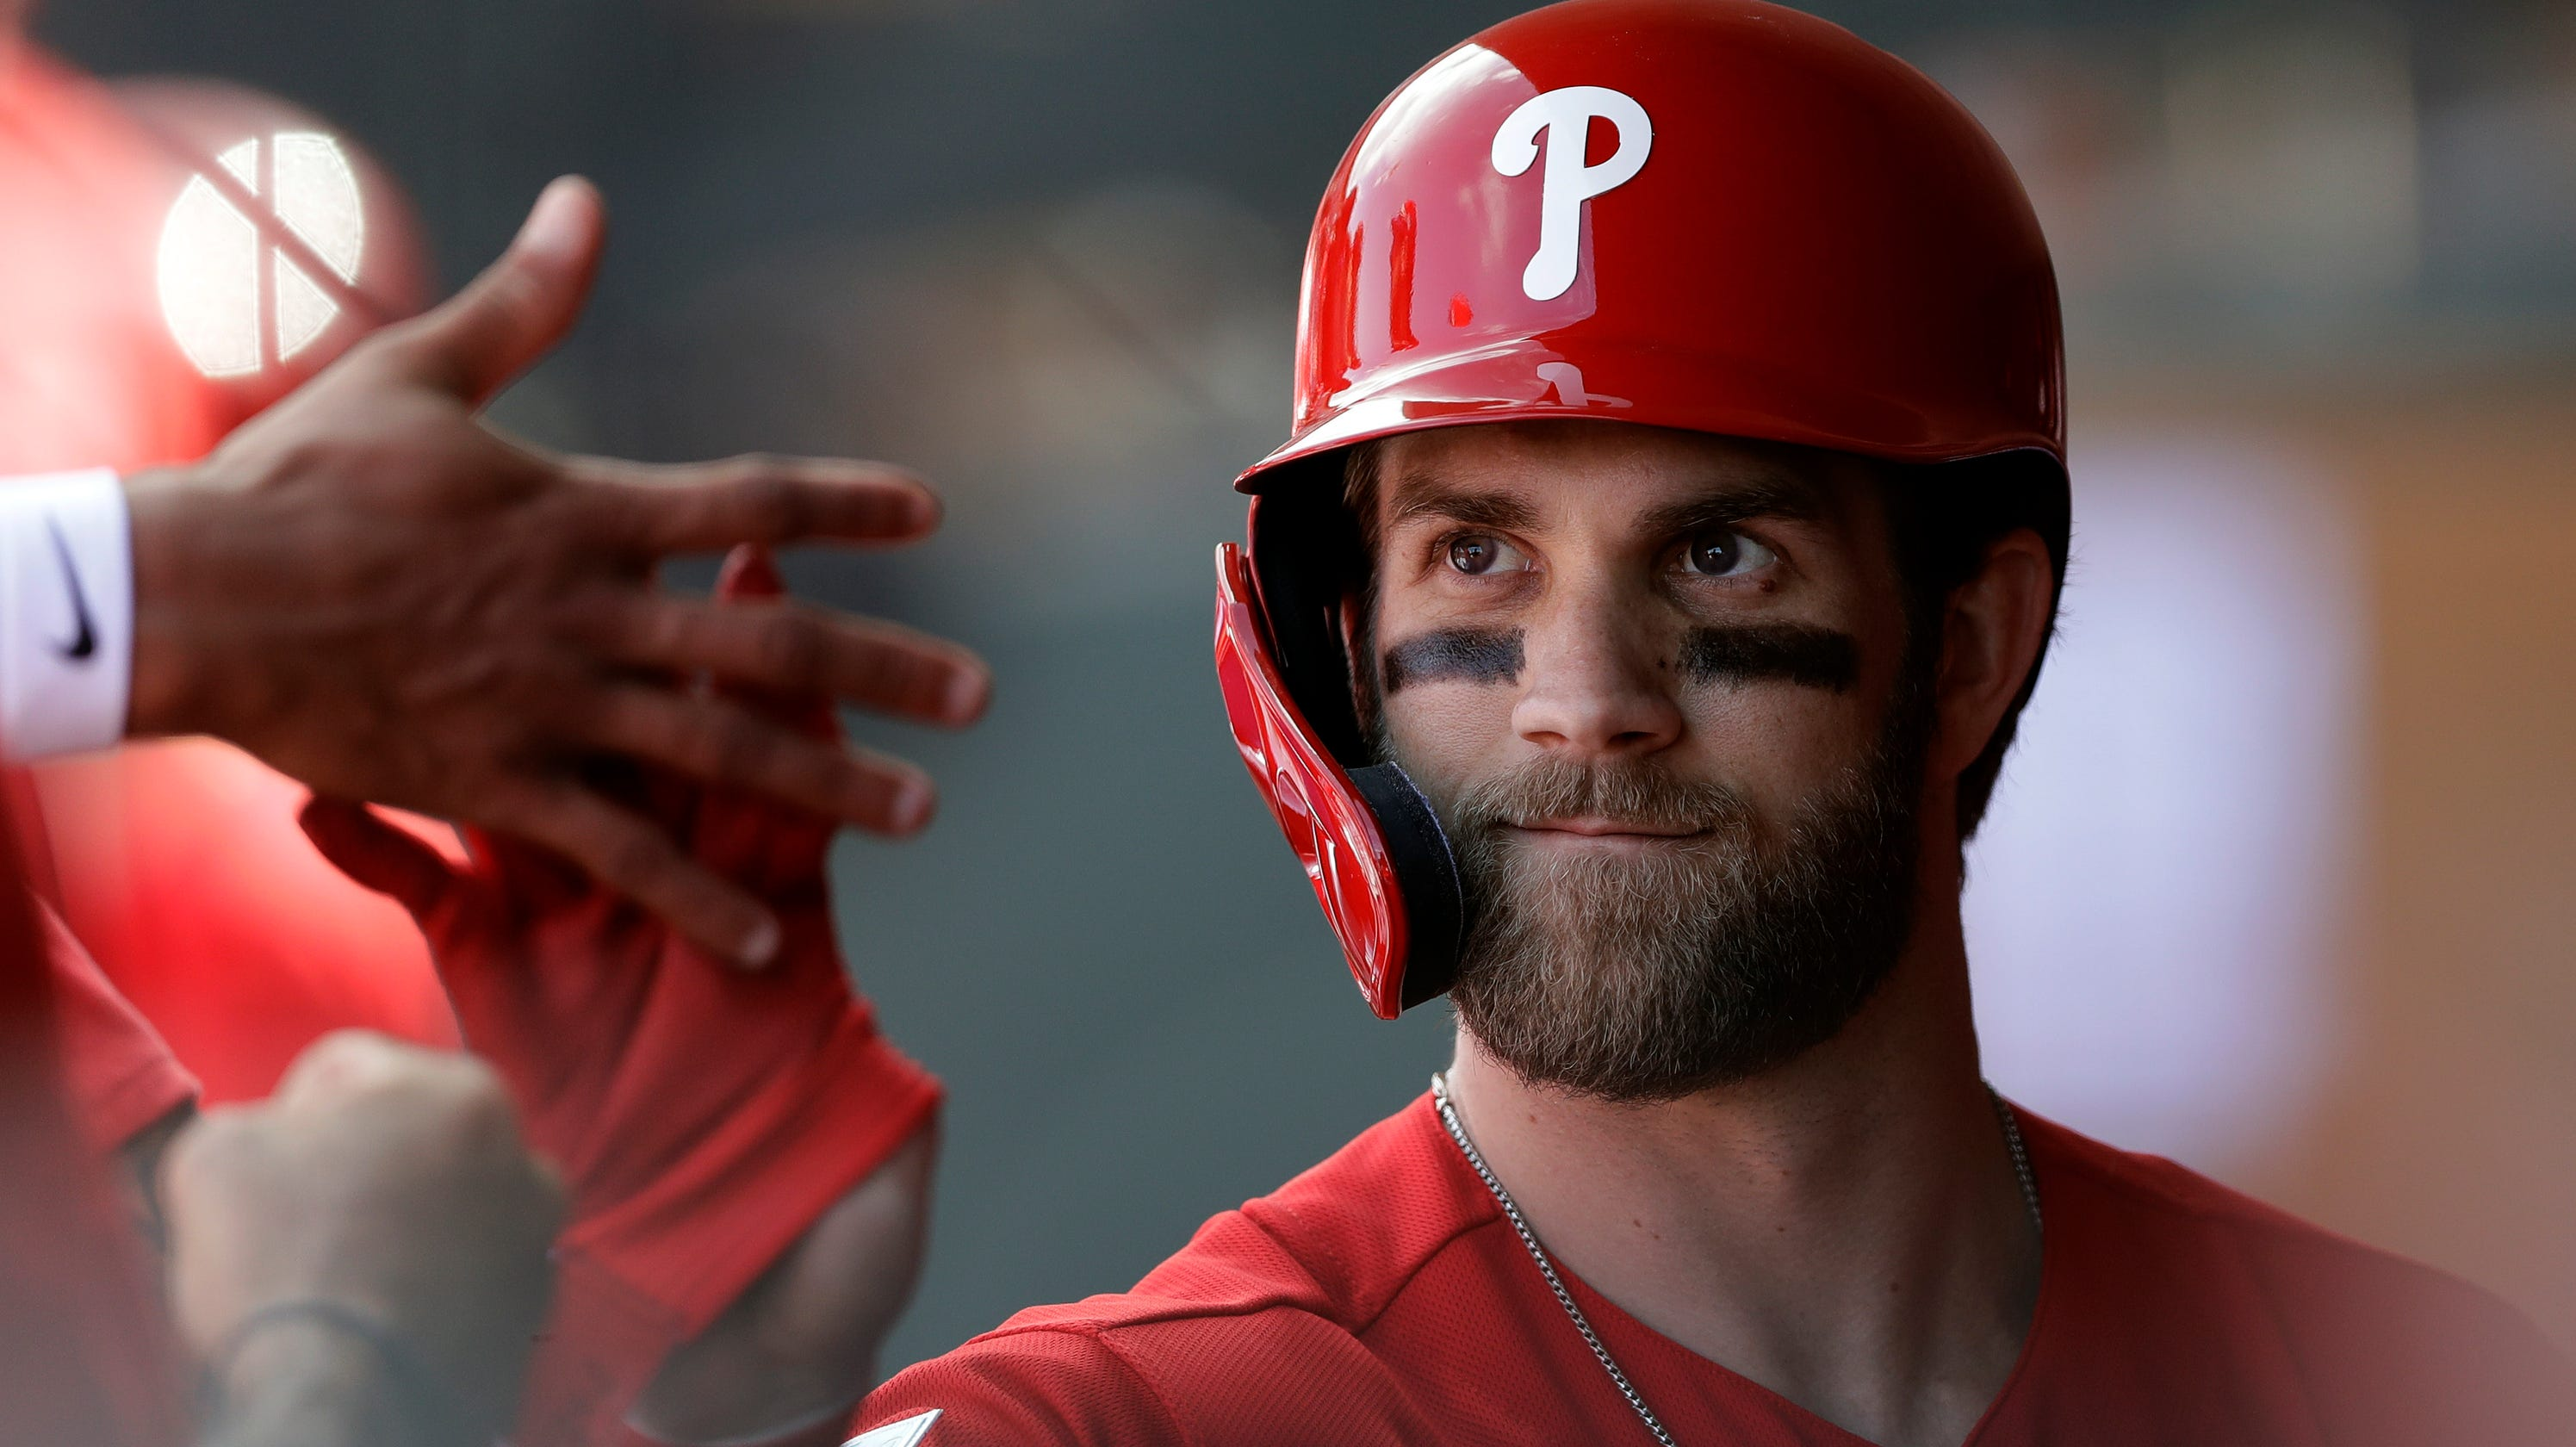 b81323812 Bryce Harper beats out Mookie Betts, Mike Trout for most popular MLB jersey